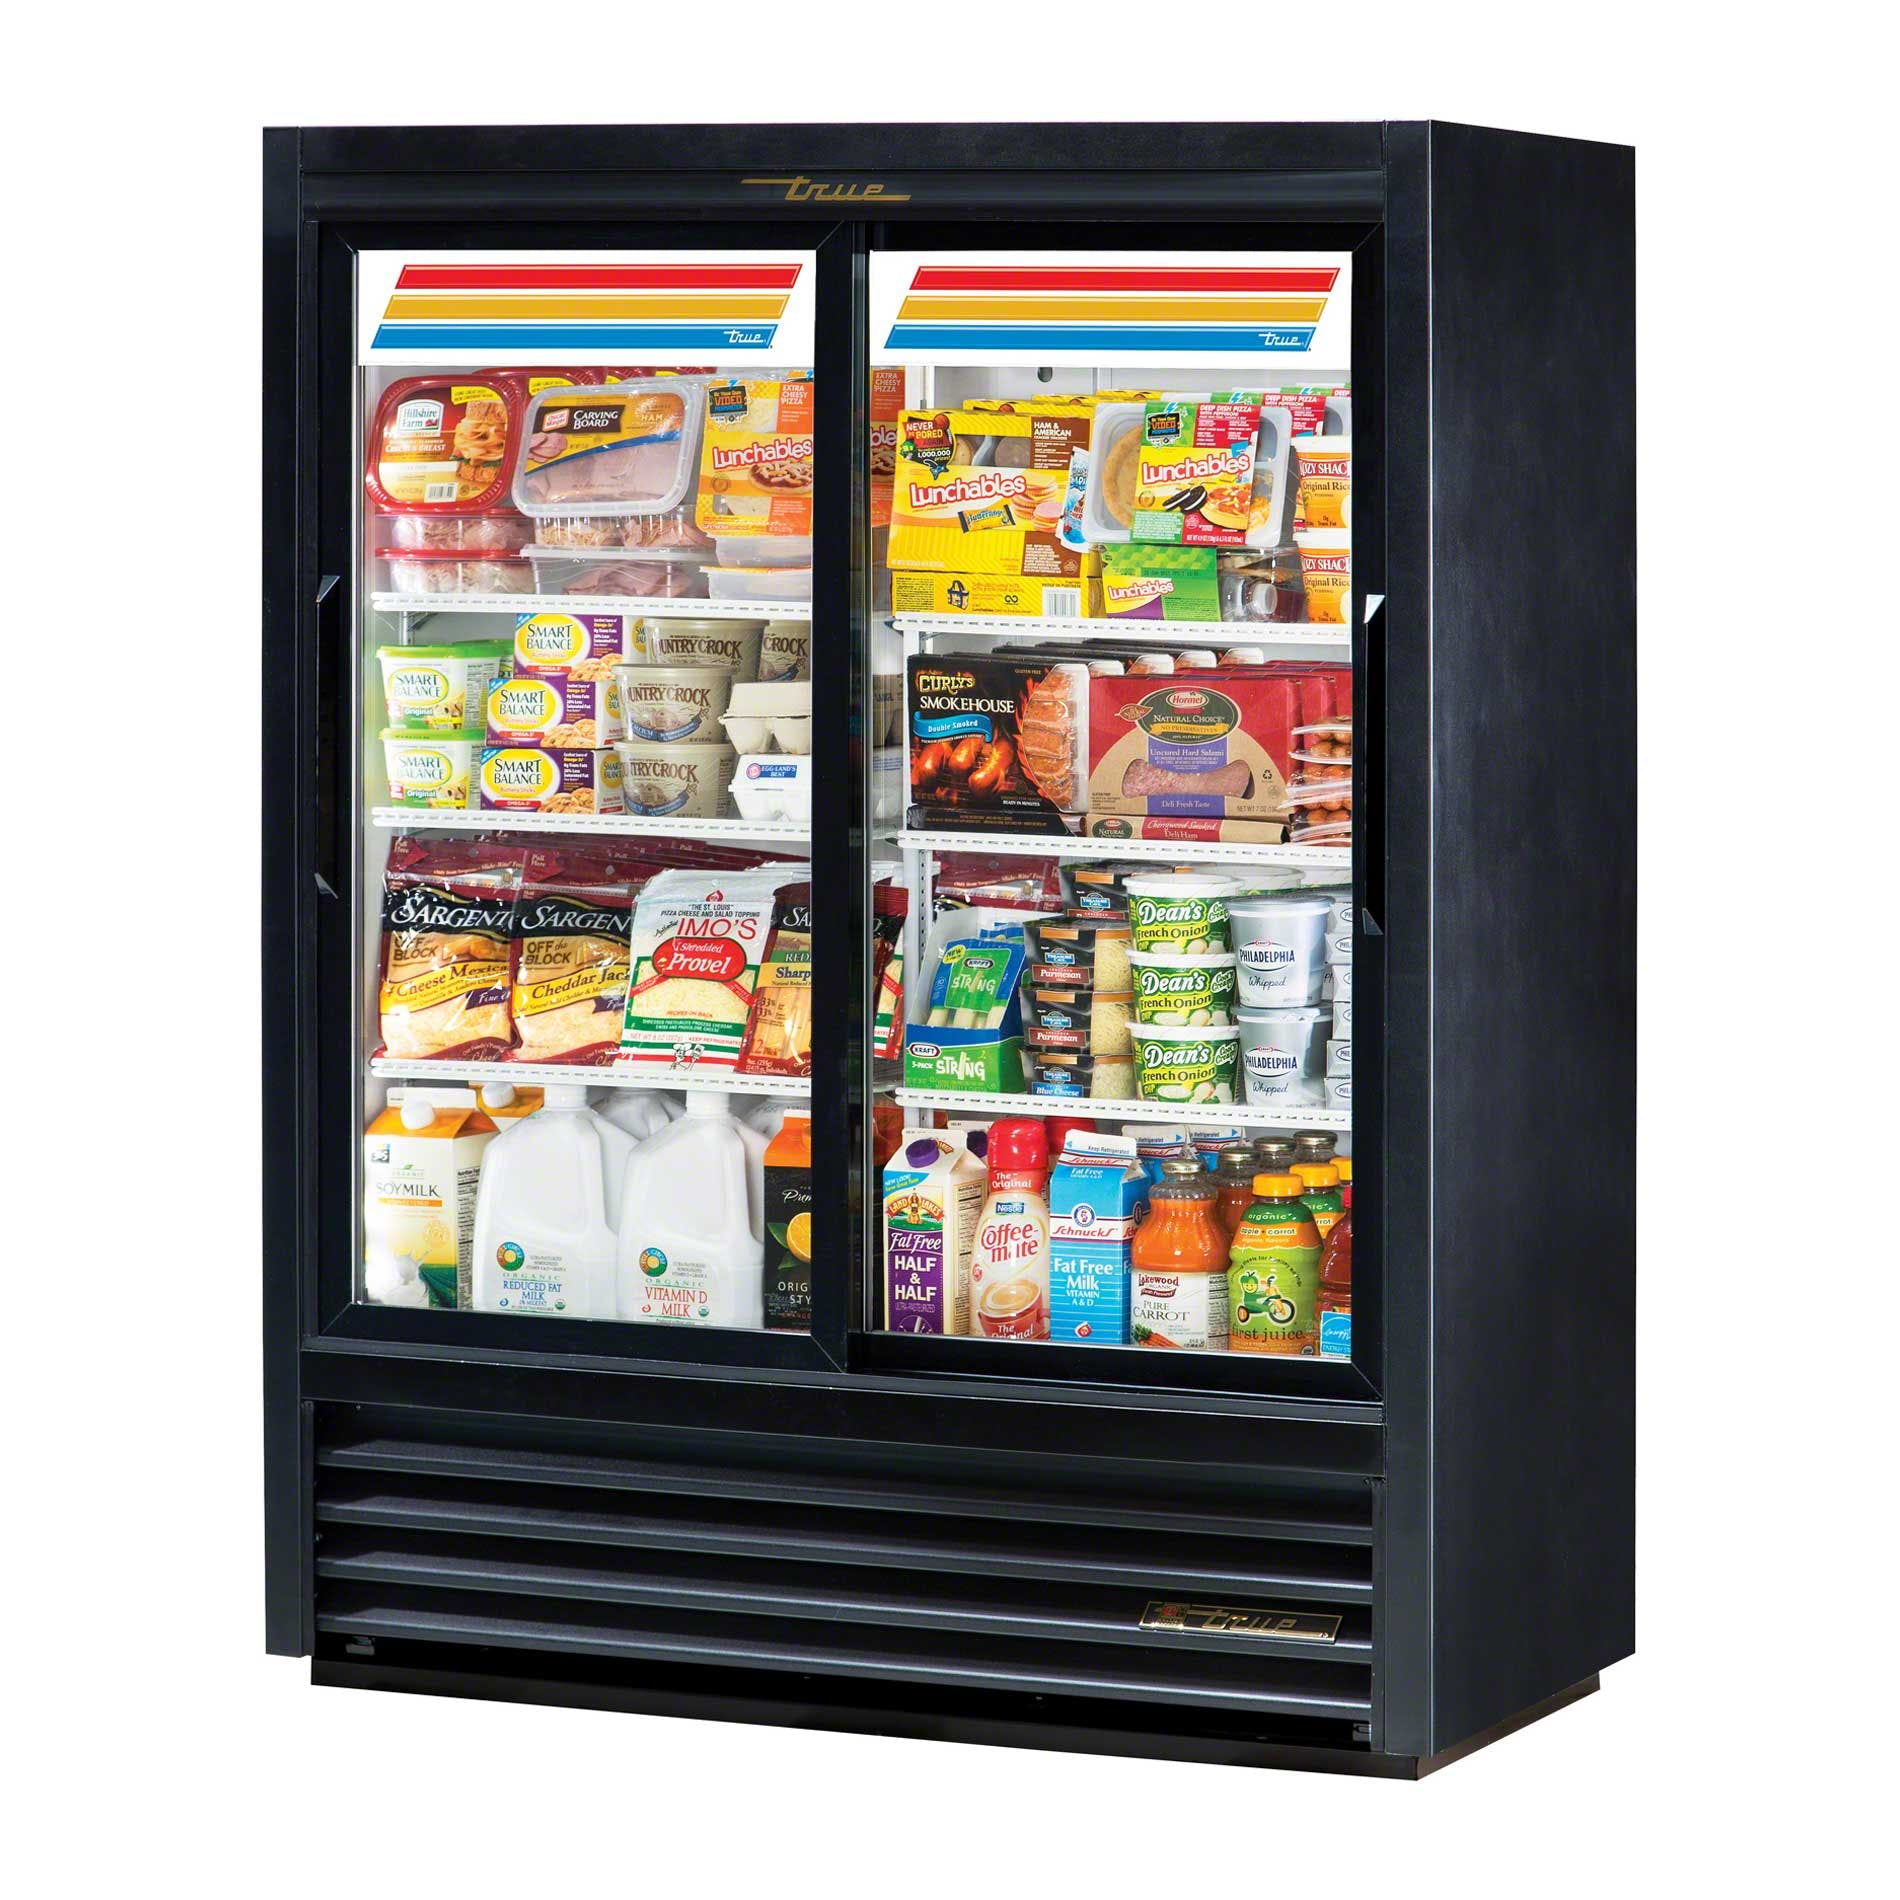 "True - GDM-41SL-60-LD 47"" Convenience Store Glass Door Merchandiser Refrigerator LED Commercial refrigerator sold by Food Service Warehouse"